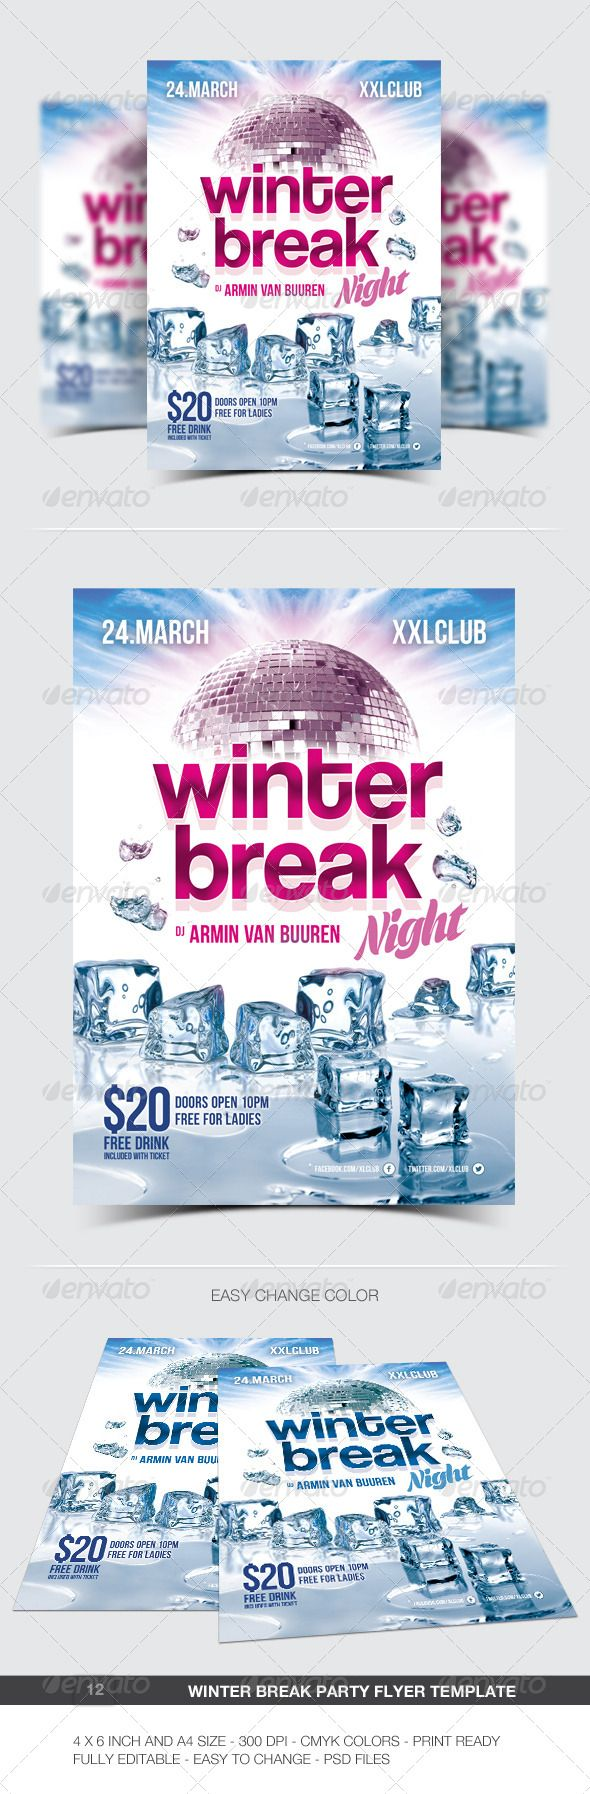 Winter Break Party Flyer / Poster - 12 #a4 #blue #break #christmas #club #concert #dance #disco #dj #electro #electronic #event #flyer #frozen #ice #melting #minimal #modern #music #night #nightclub #party #poster #print #snow #white #winter #winter night #xmas #winterbreak #ice